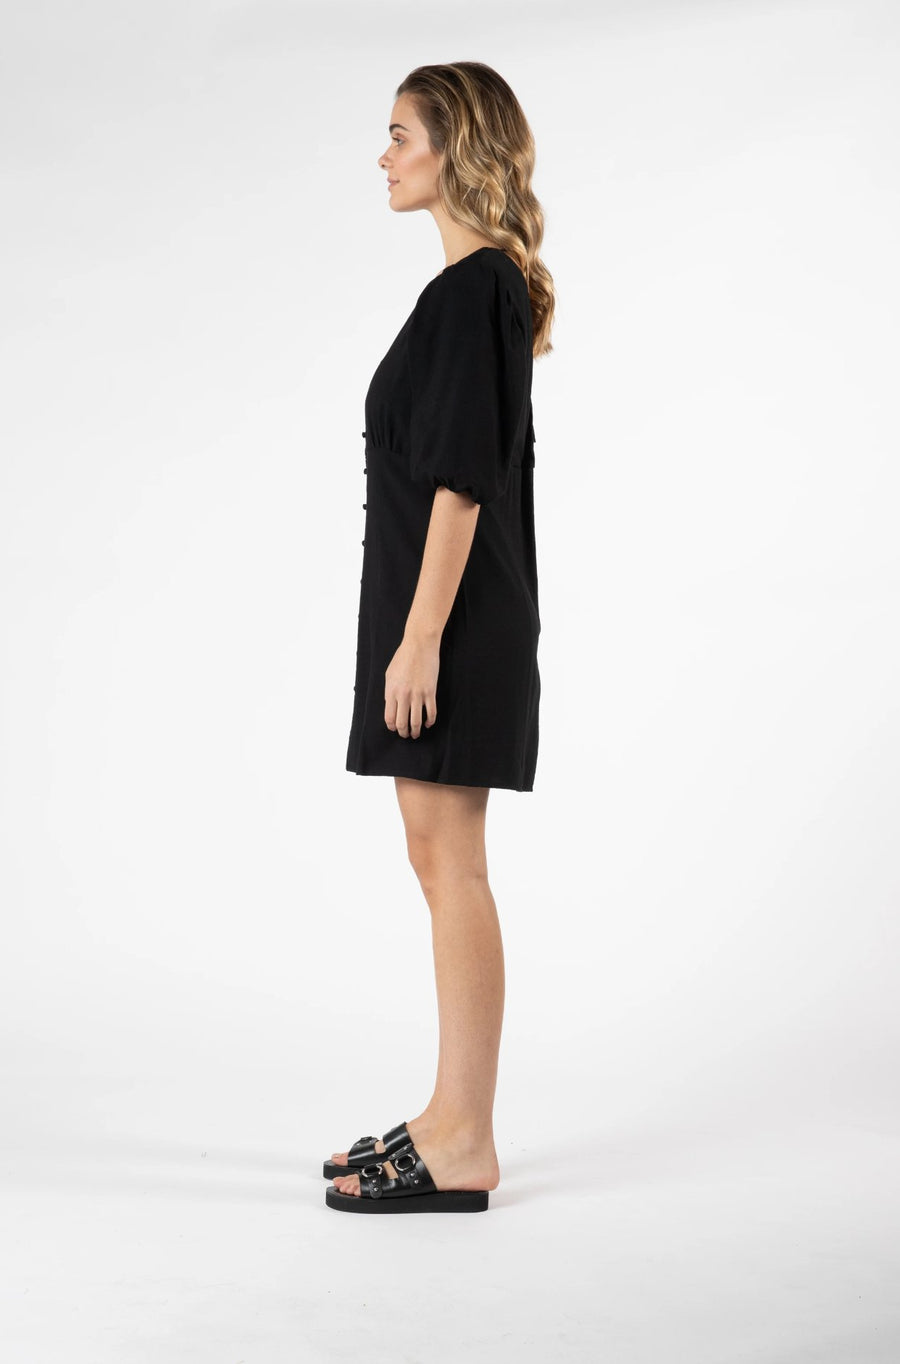 Tarva Puff Dress Women | Lyn Rose Boutique